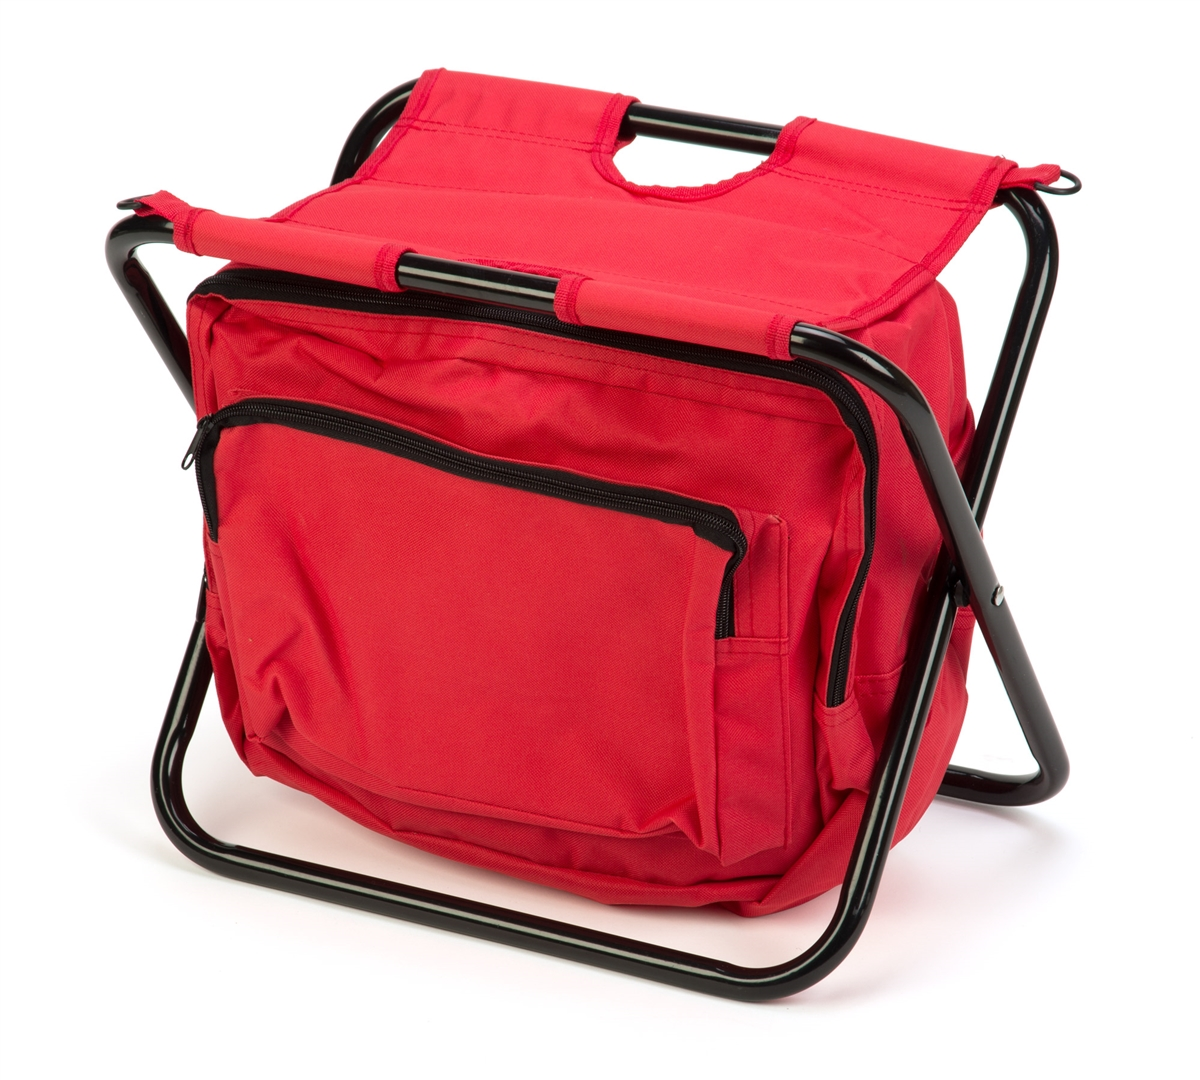 Portable Folding Camp Stool With Storage Pouch By Trademark Innovations  (Red)